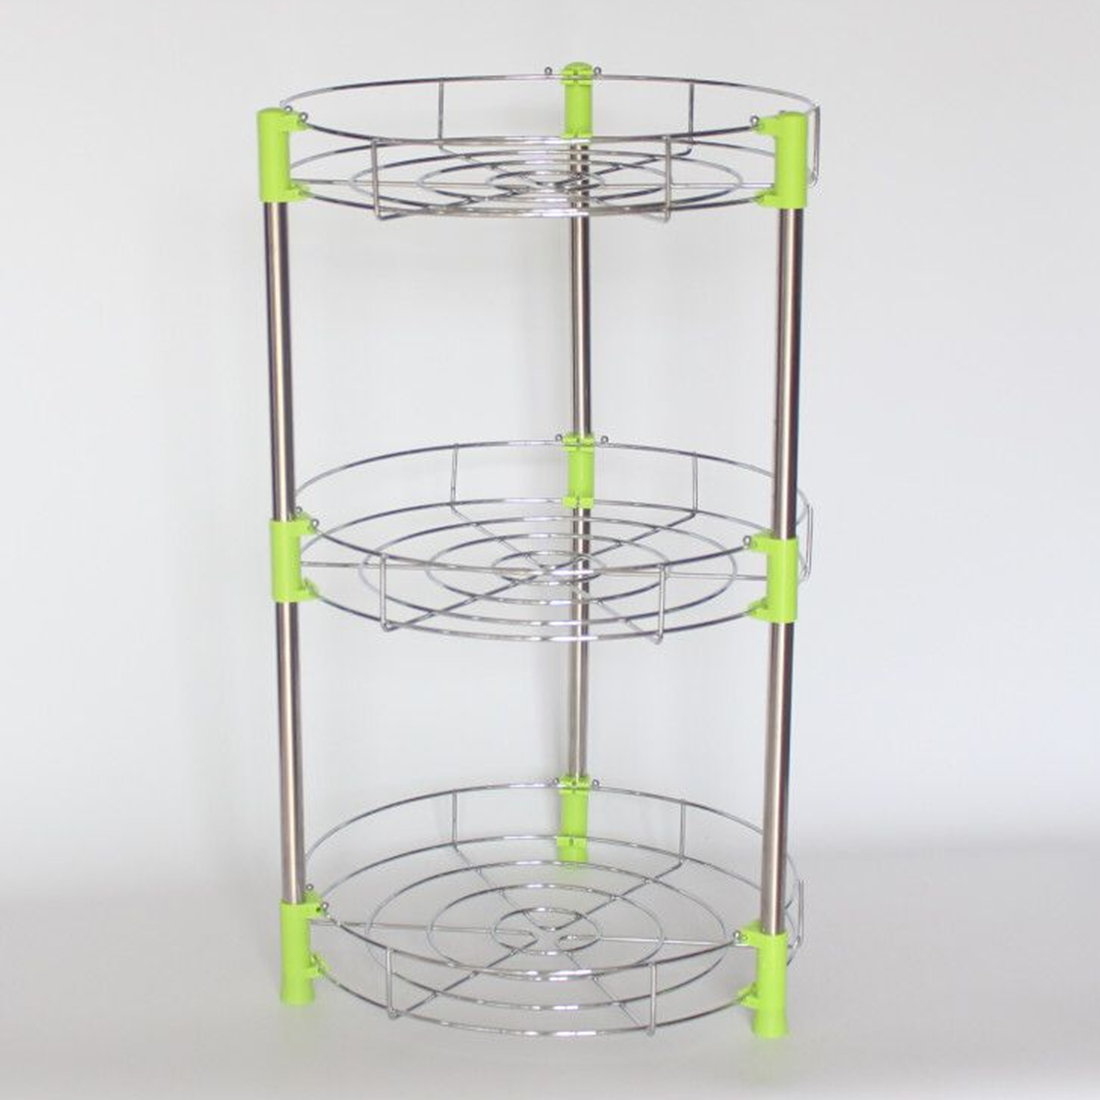 3-Layer Multifuction Stainless Steel Pan Organizer Rack Shelves Pot Holder Kitchen Storage - Silver + Green